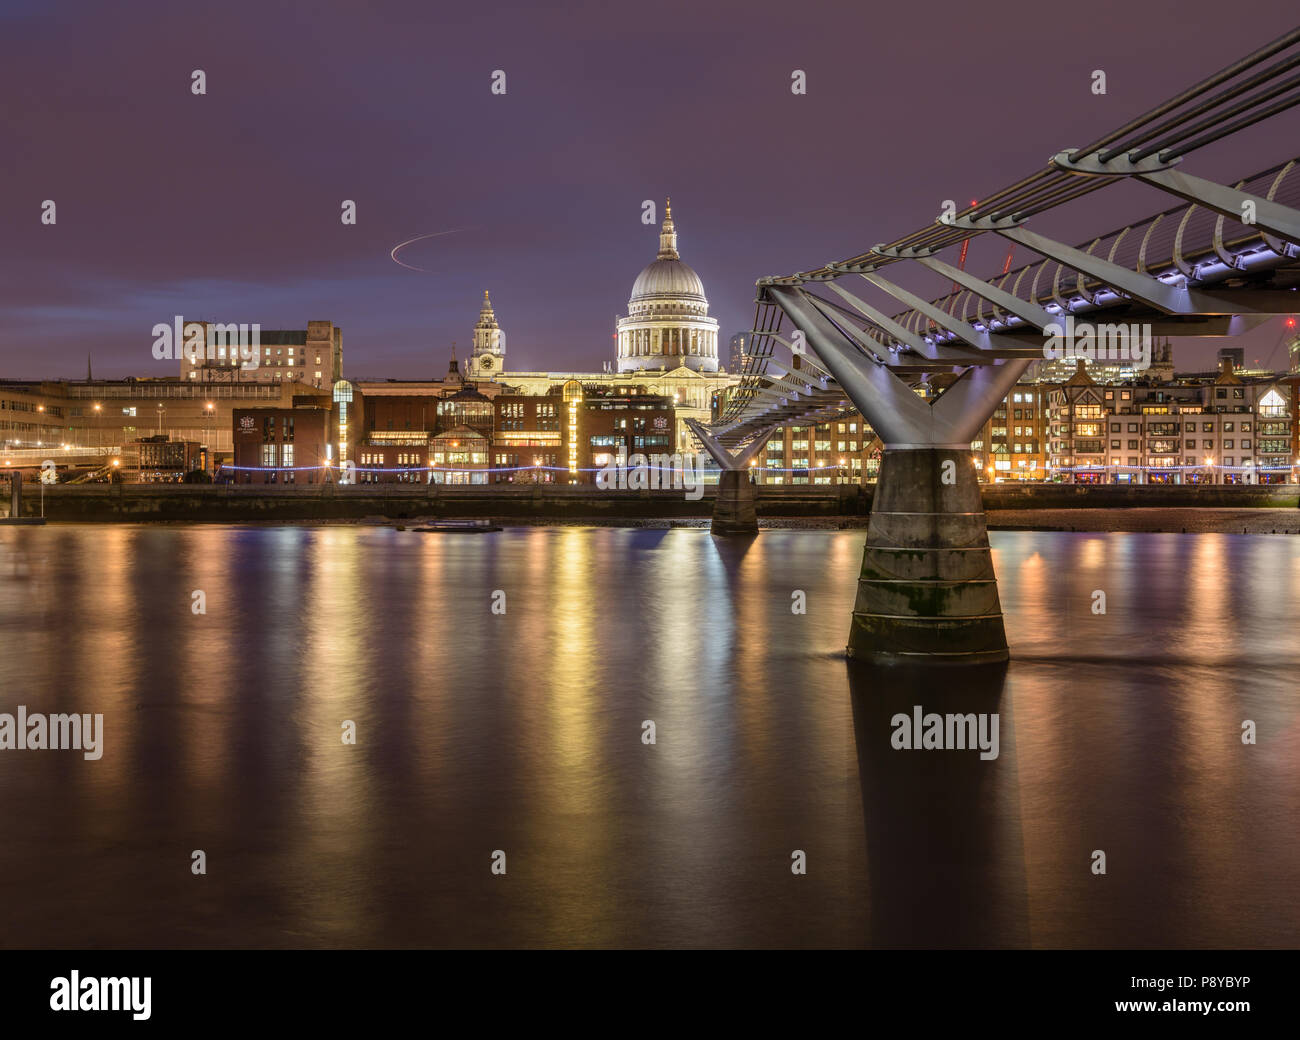 Long exposure landscape view of St Pauls Cathedral and the London Millennium Footbridge at night with lights reflected in the River Thames - Stock Image